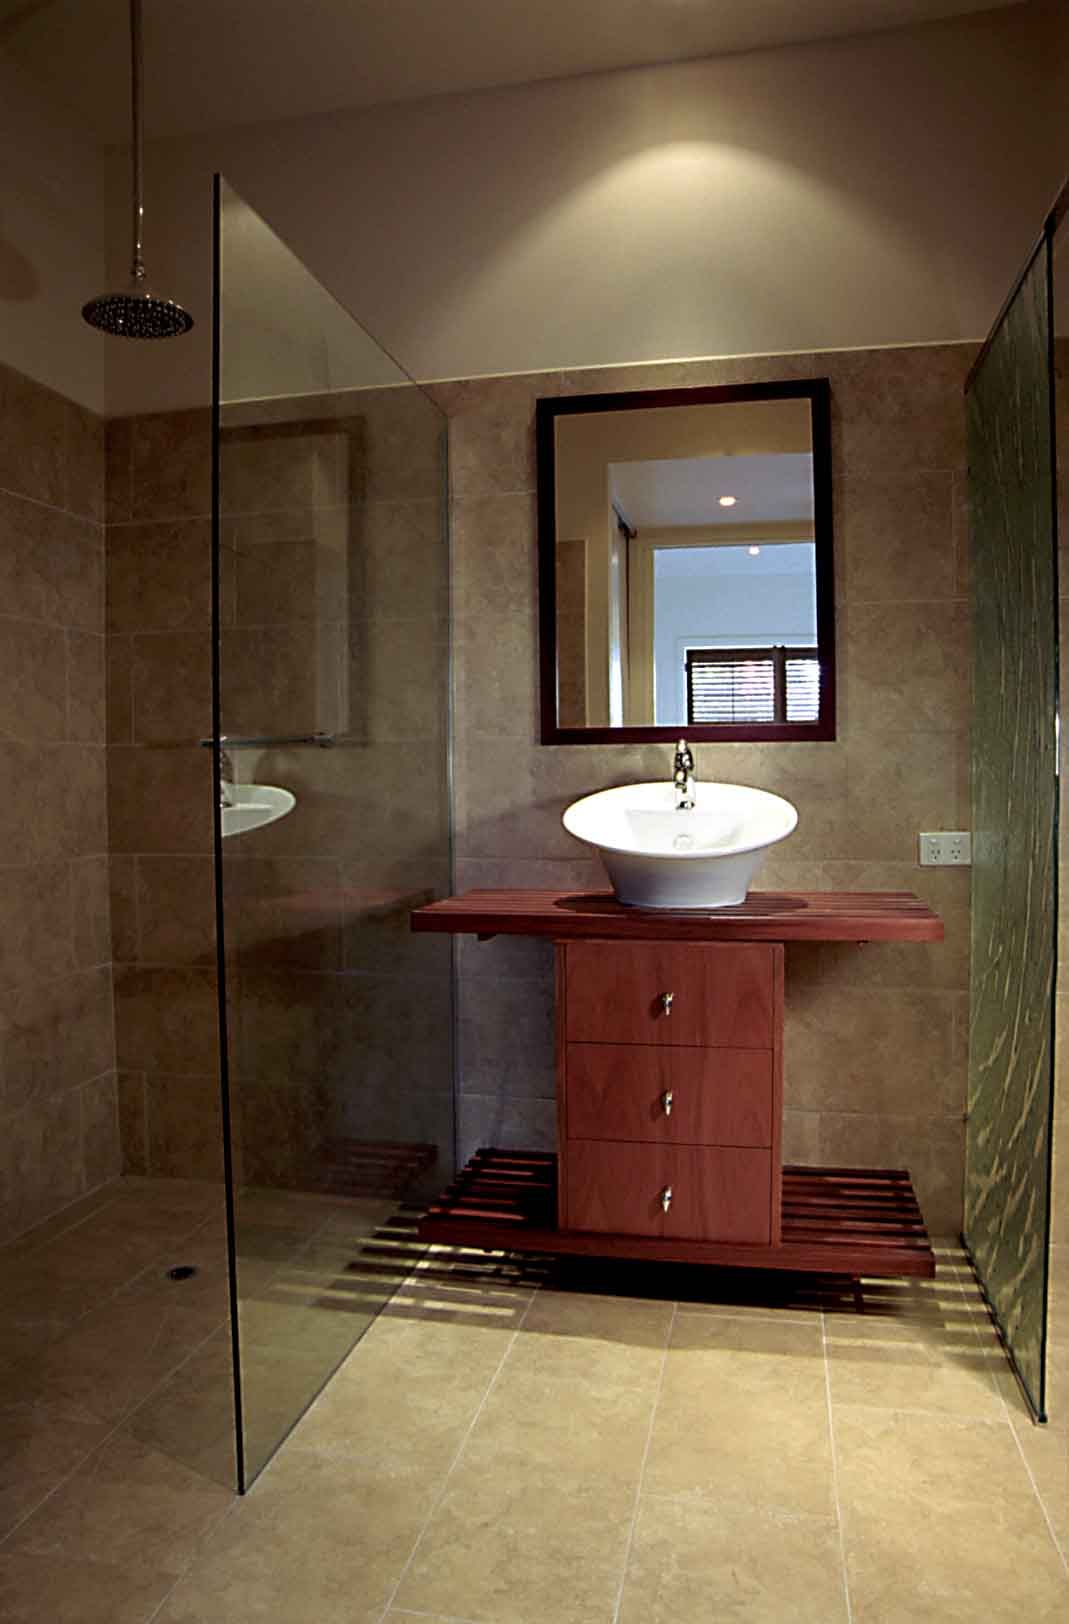 Wet room design for small bathrooms small ensuite for Ensuite bathroom designs